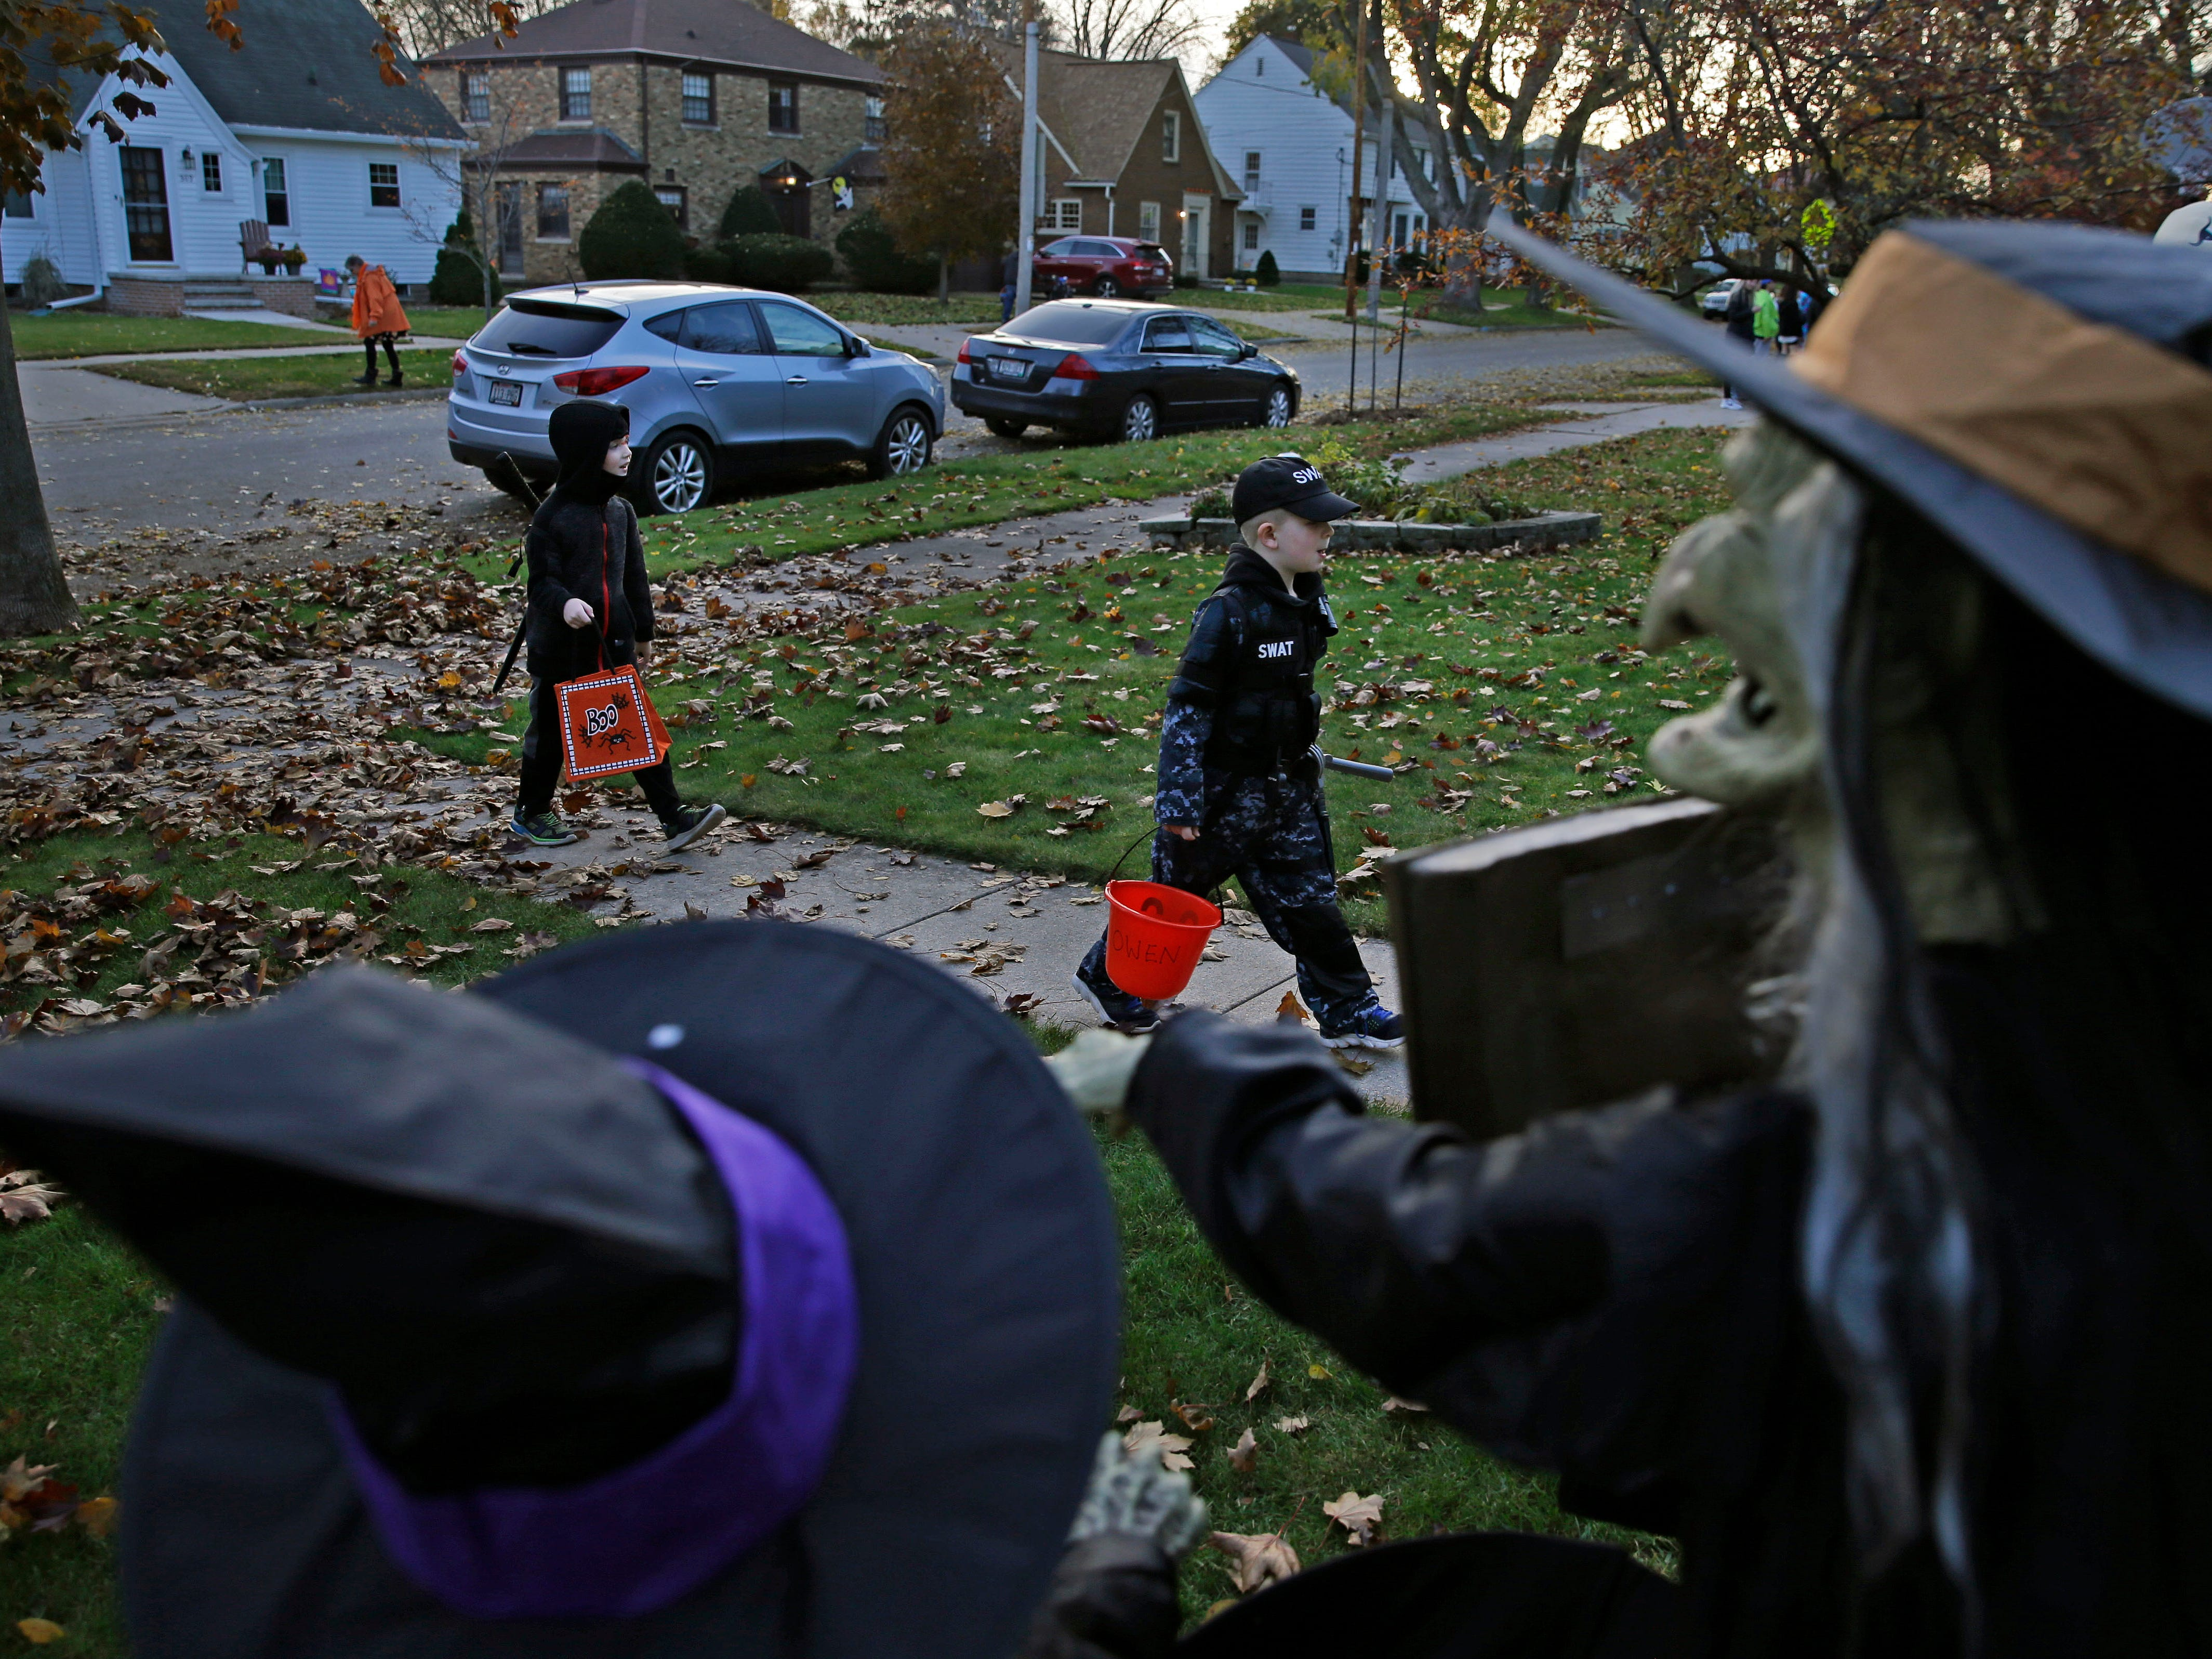 Owen Vandenberg (front) and Logan Walters approach a spooky house as they trick or treat Wednesday, October 31, 2018, in Appleton, Wis.